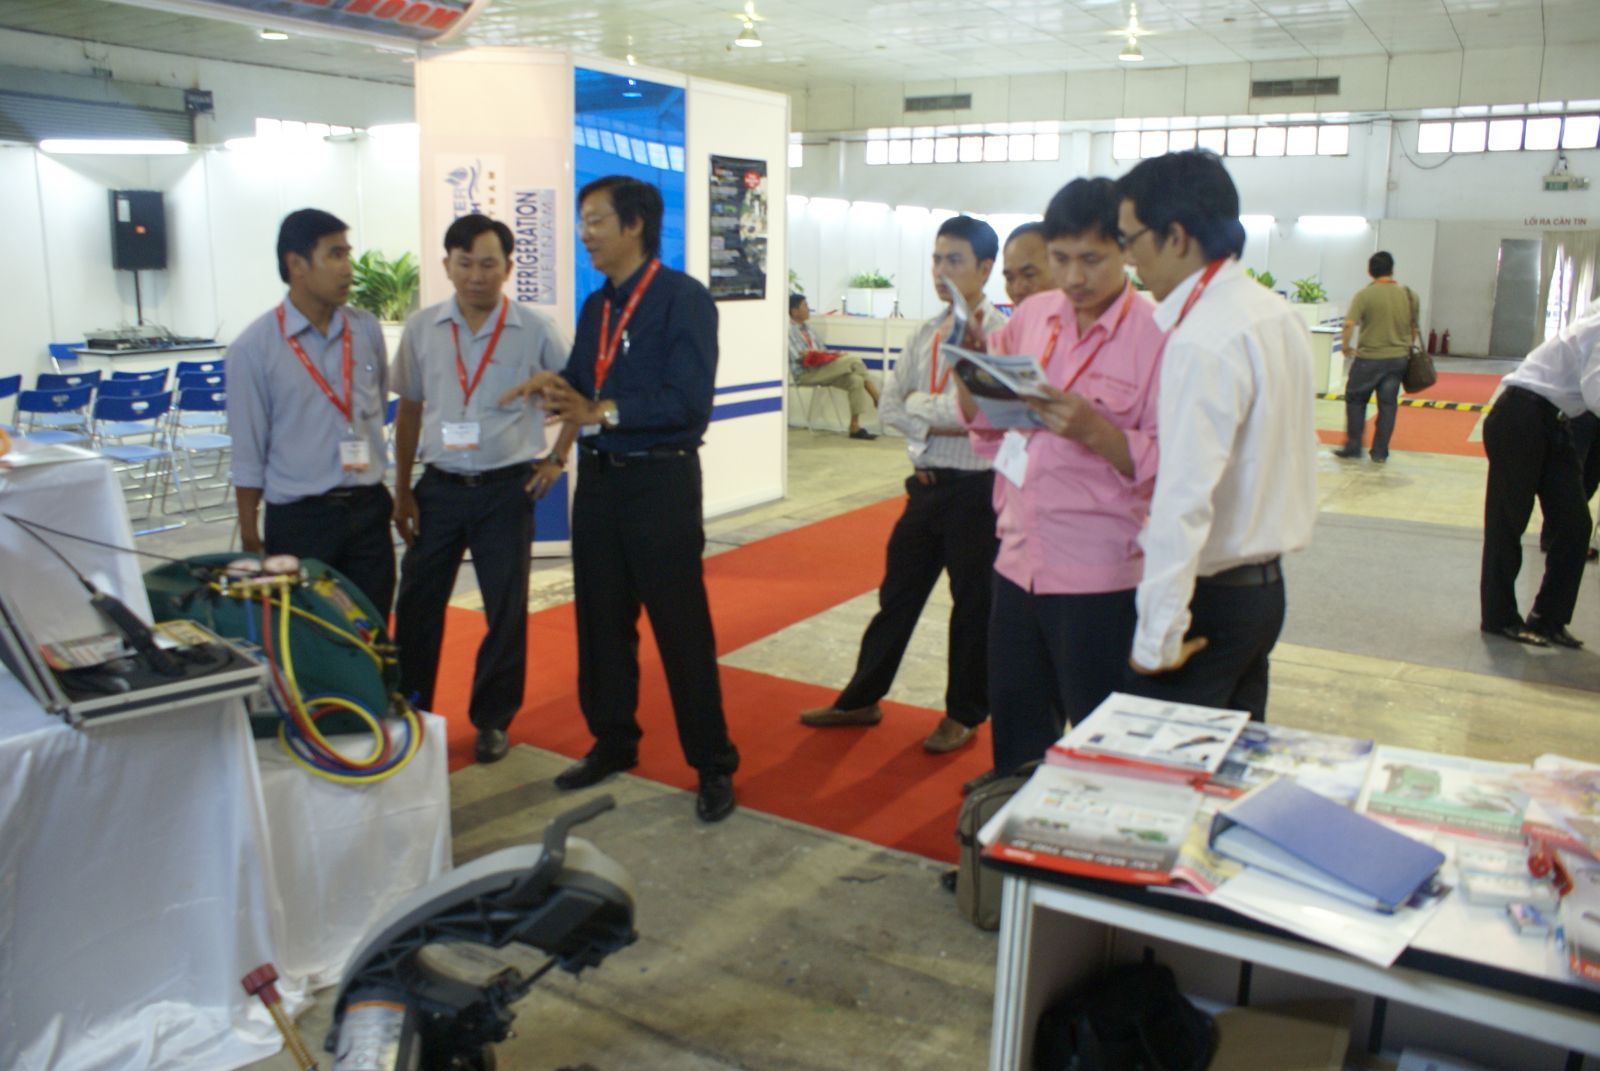 HVAC VIETNAM 16-18 MARCH 2011